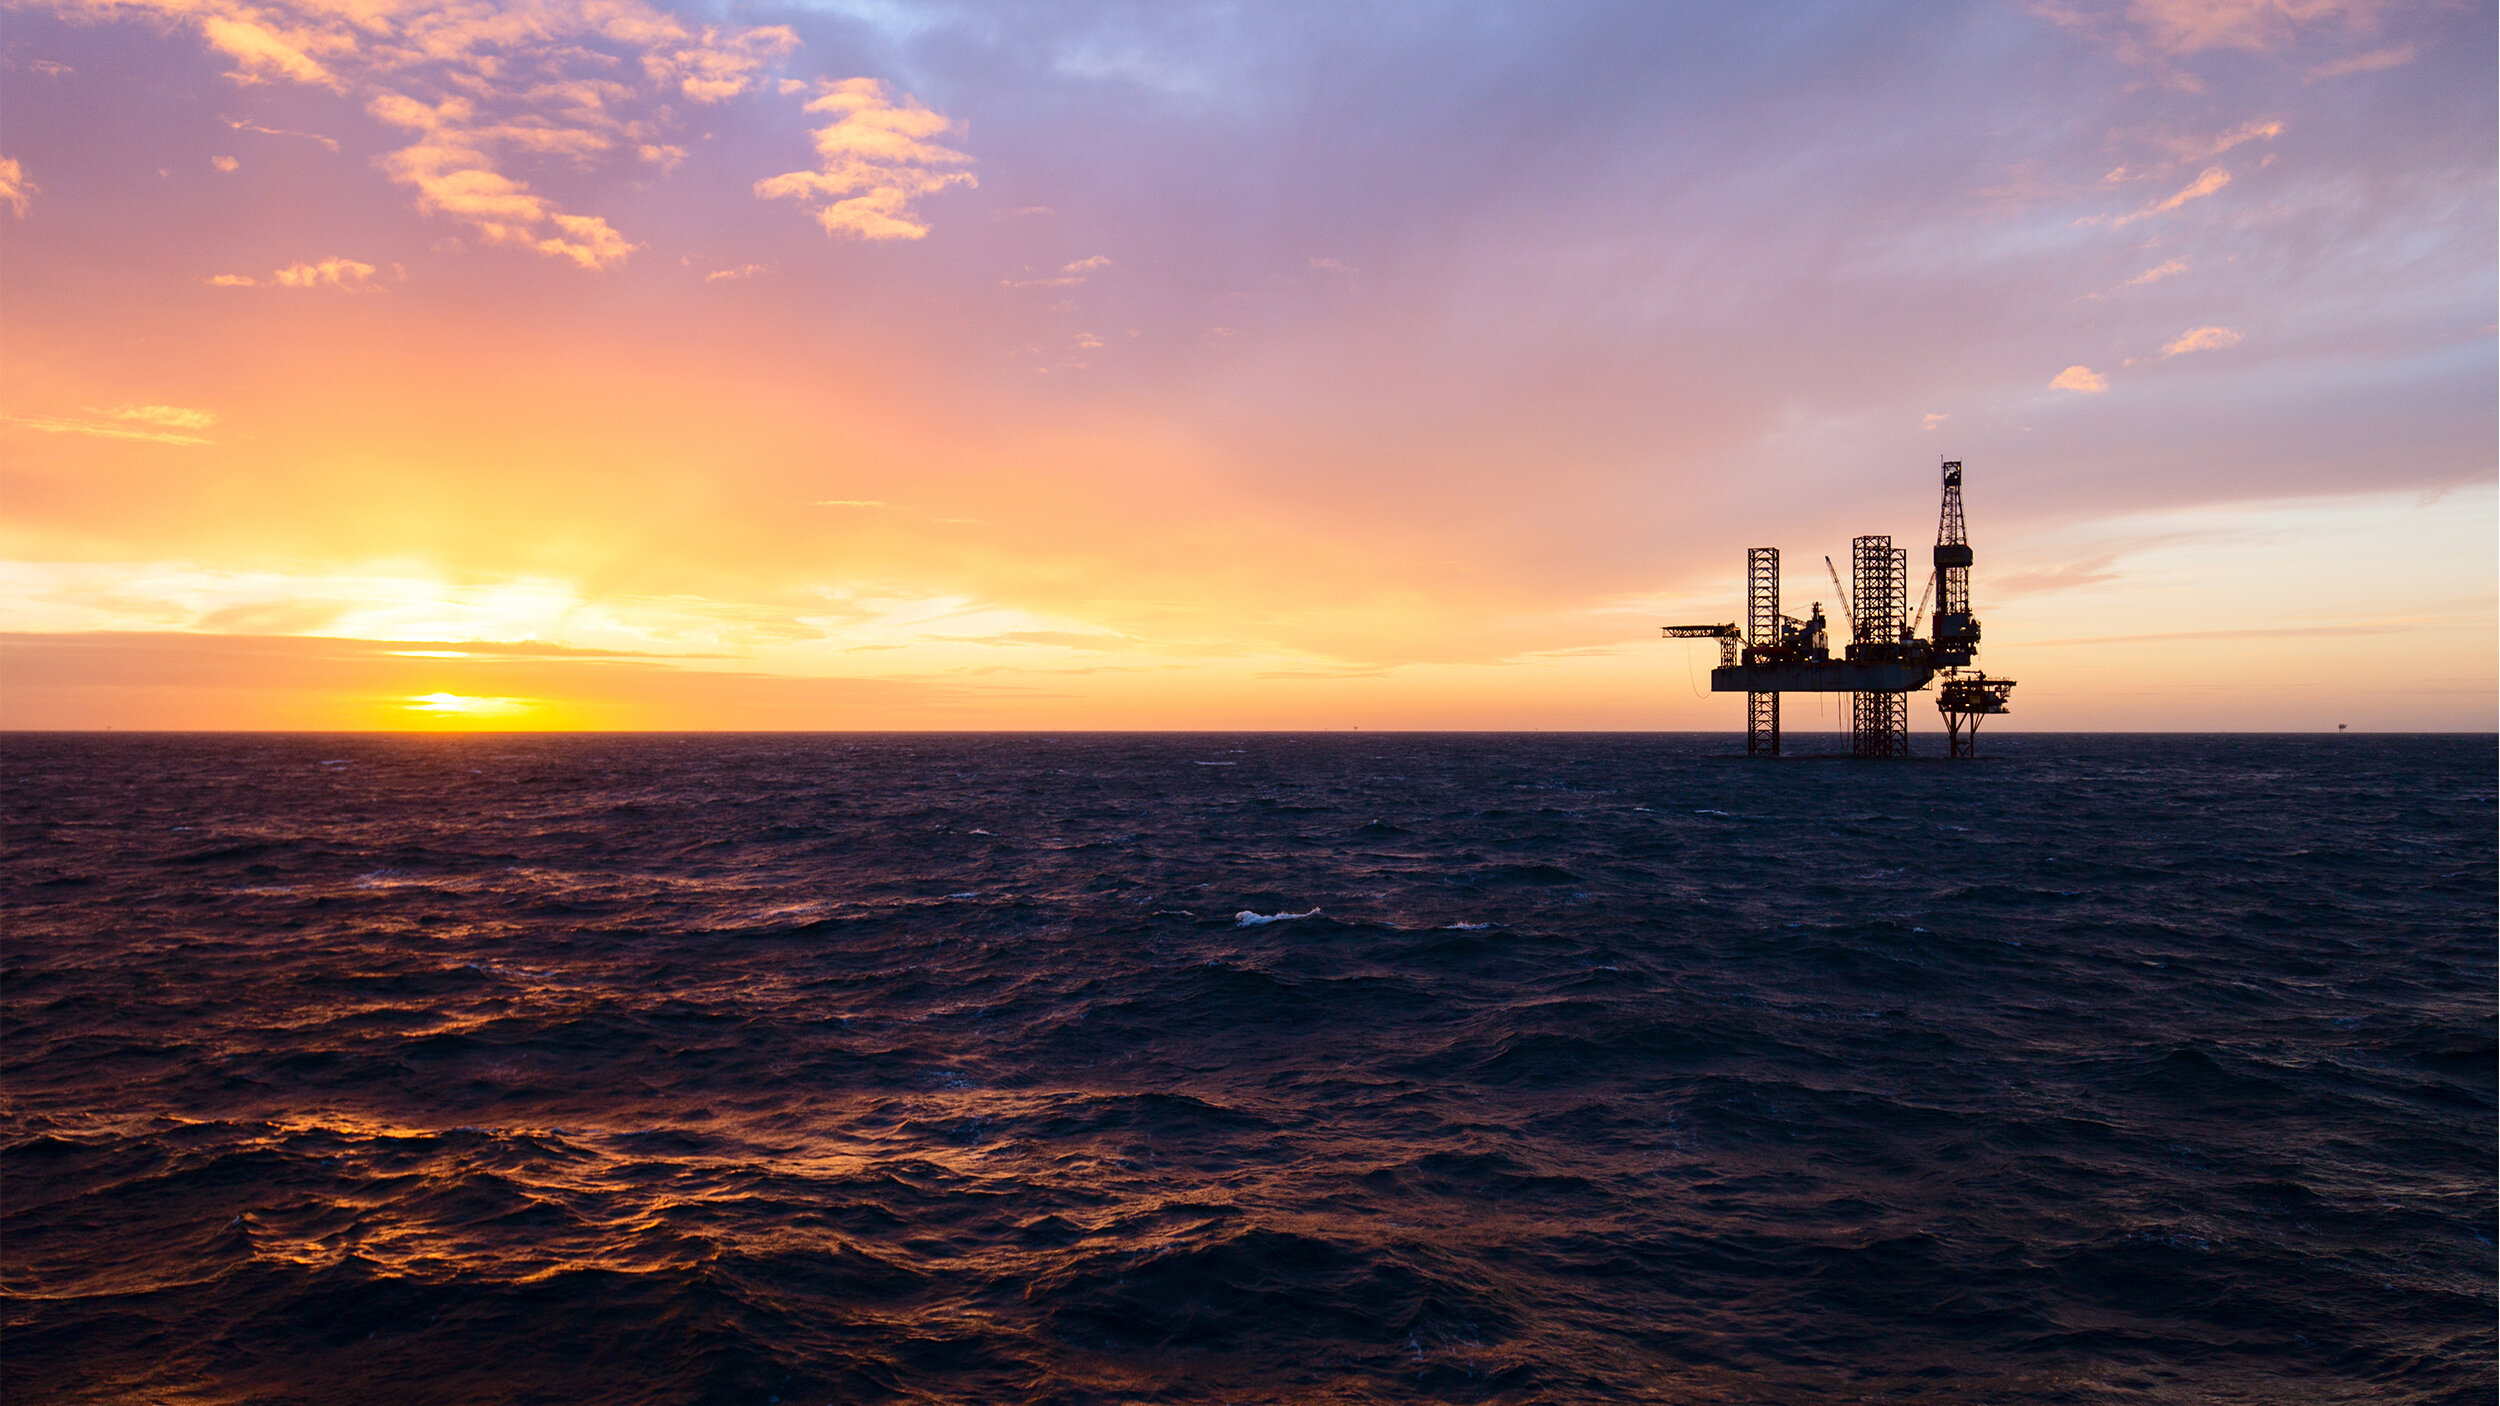 Efficient Integration Reduces Days Per Well in a Offshore Environment